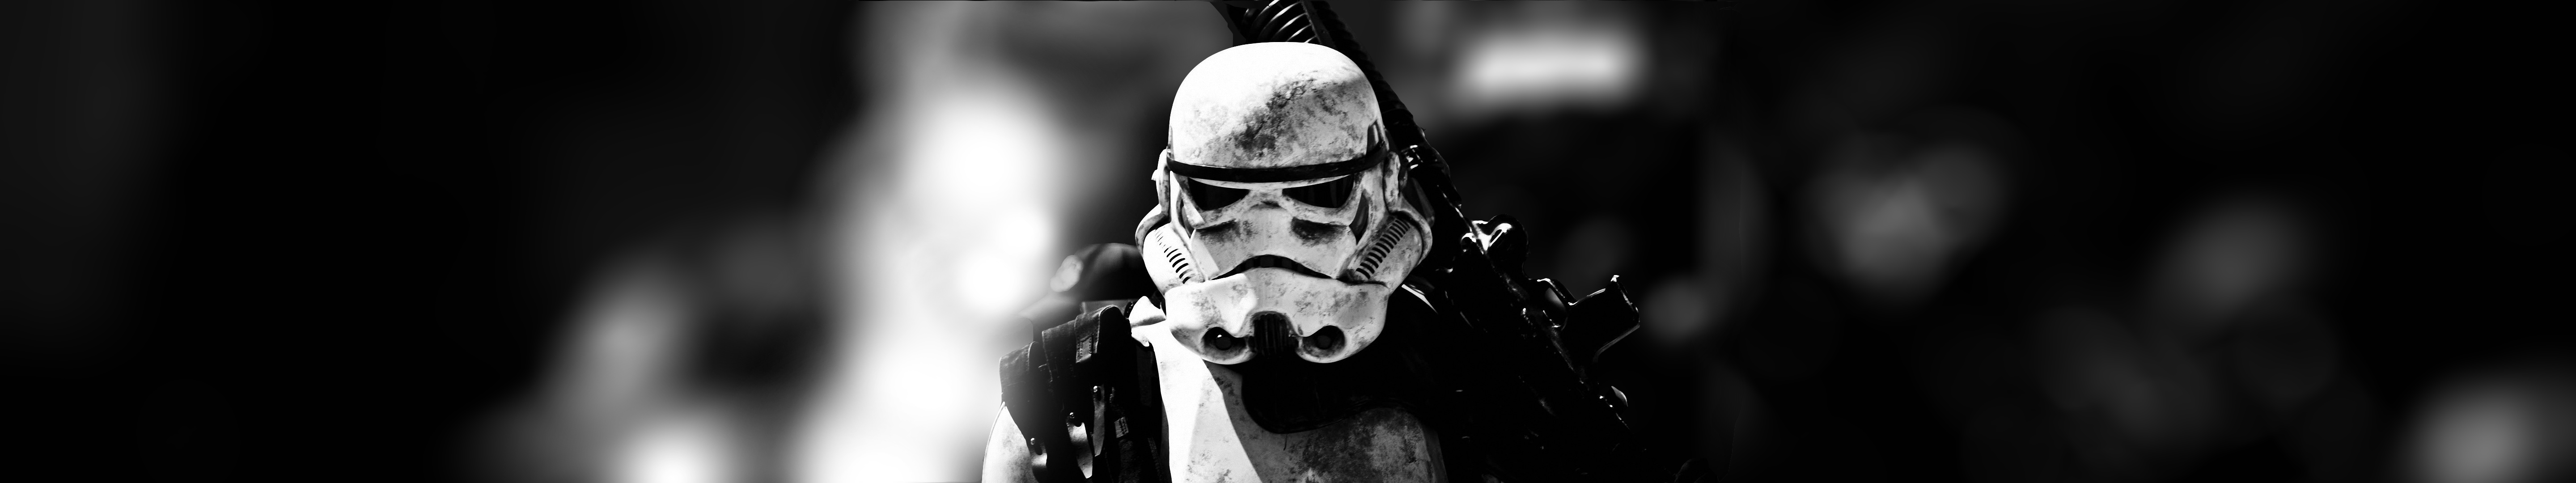 Created-my-own-Triple-Monitor-Stormtrooper-to-match-my-black-and-white-desk-setup-x-wallpaper-wpc5803783